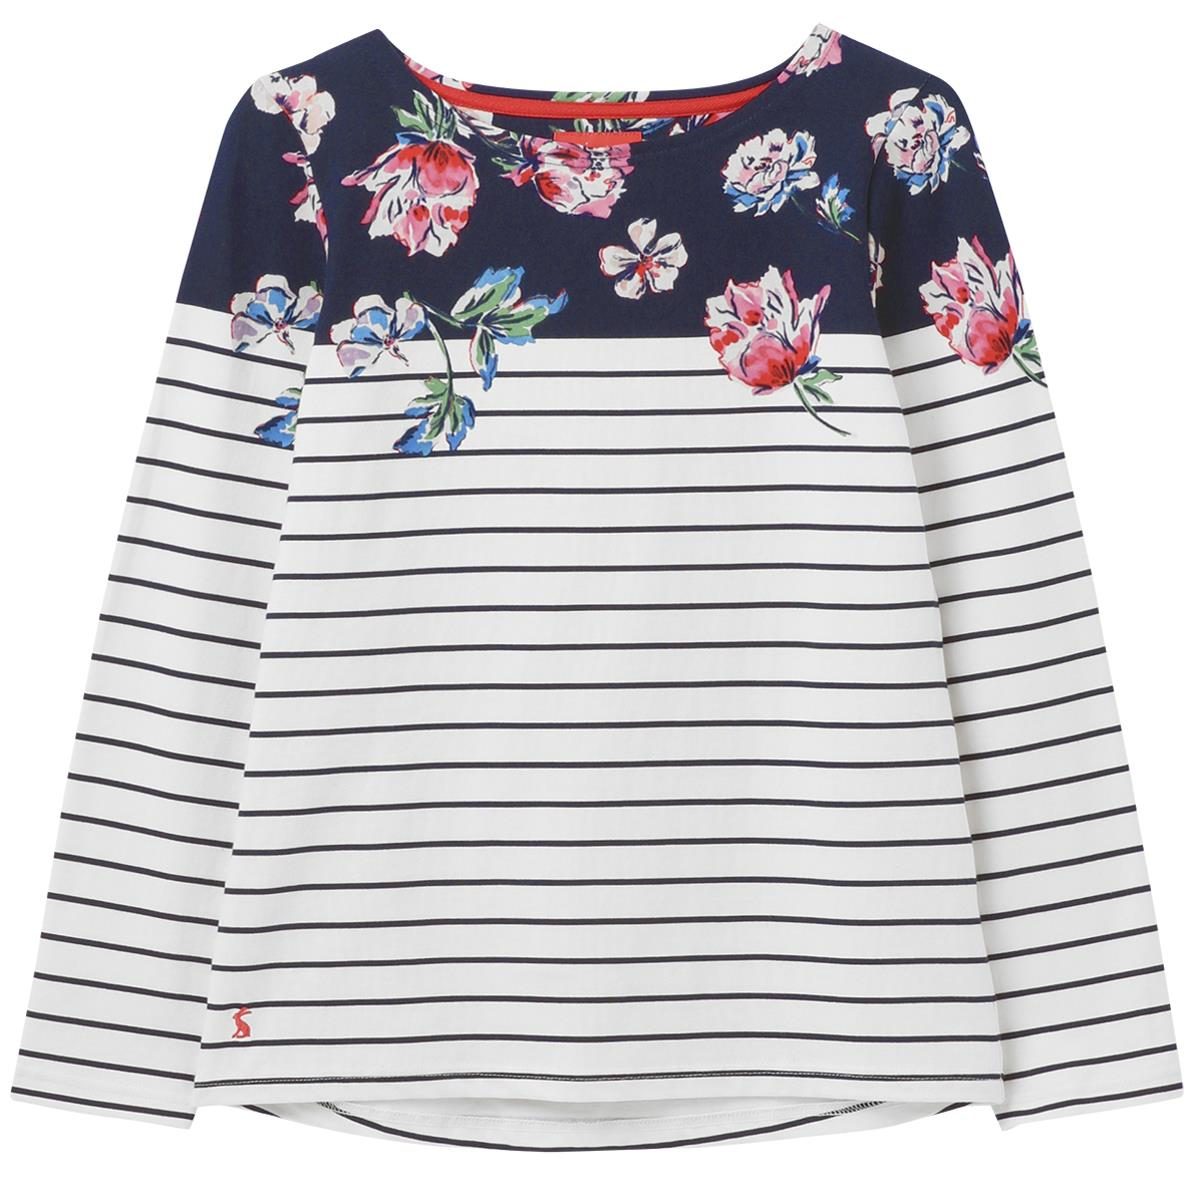 joules womens harbour print long sleeve jersey top ss21  12